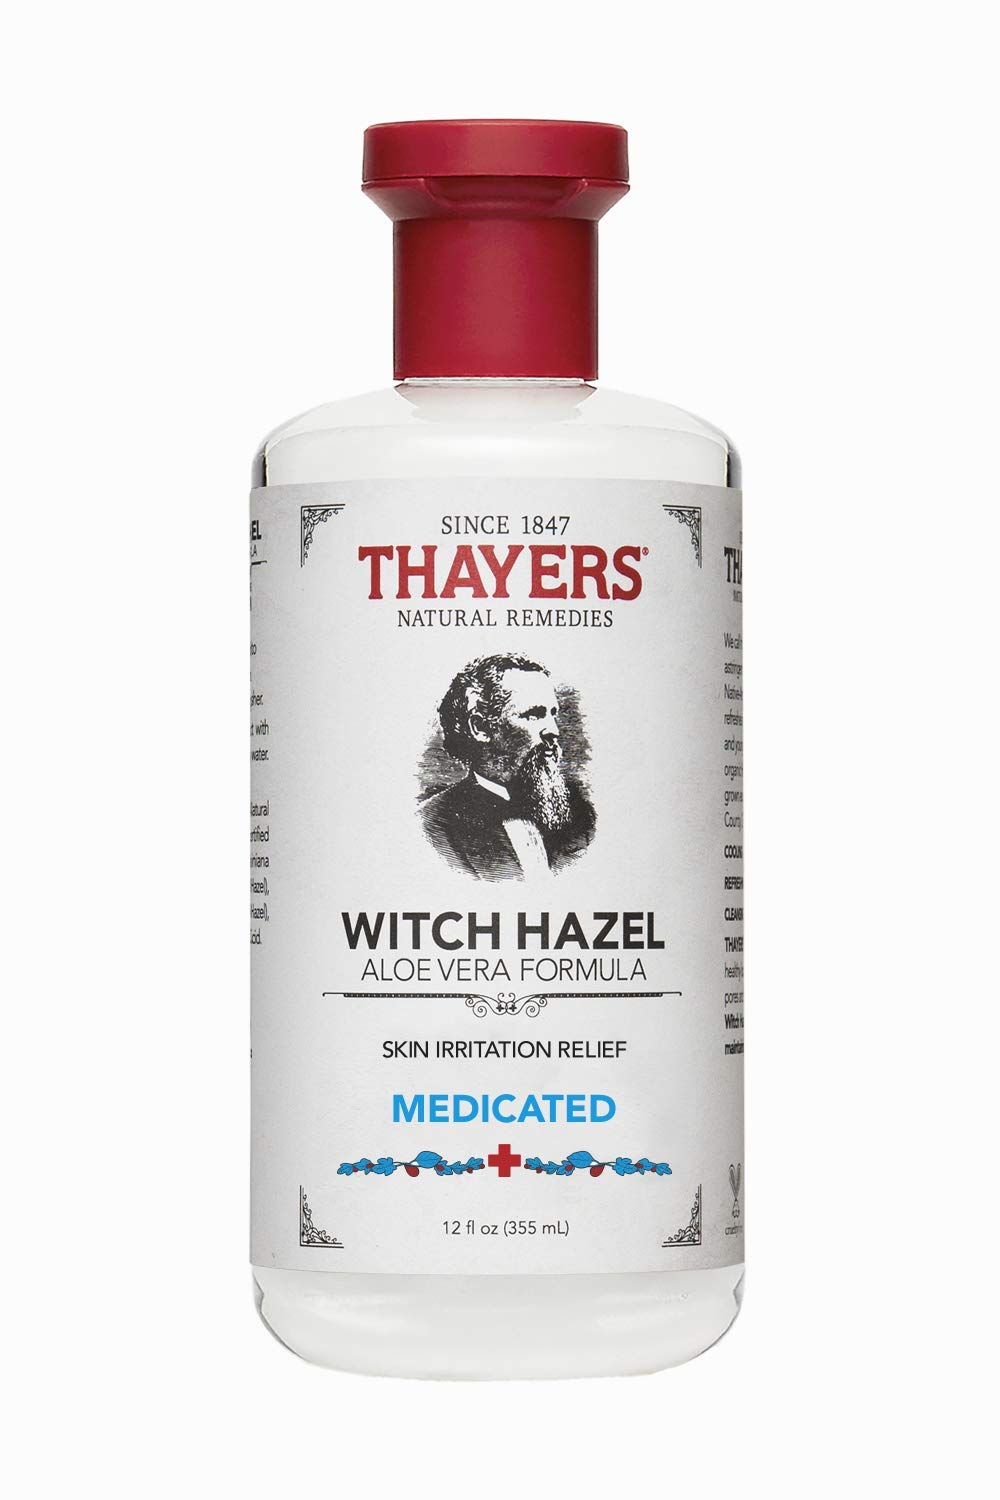 Thayers Witch Hazel Aloe Vera Formula, Medicated 12 oz 7001